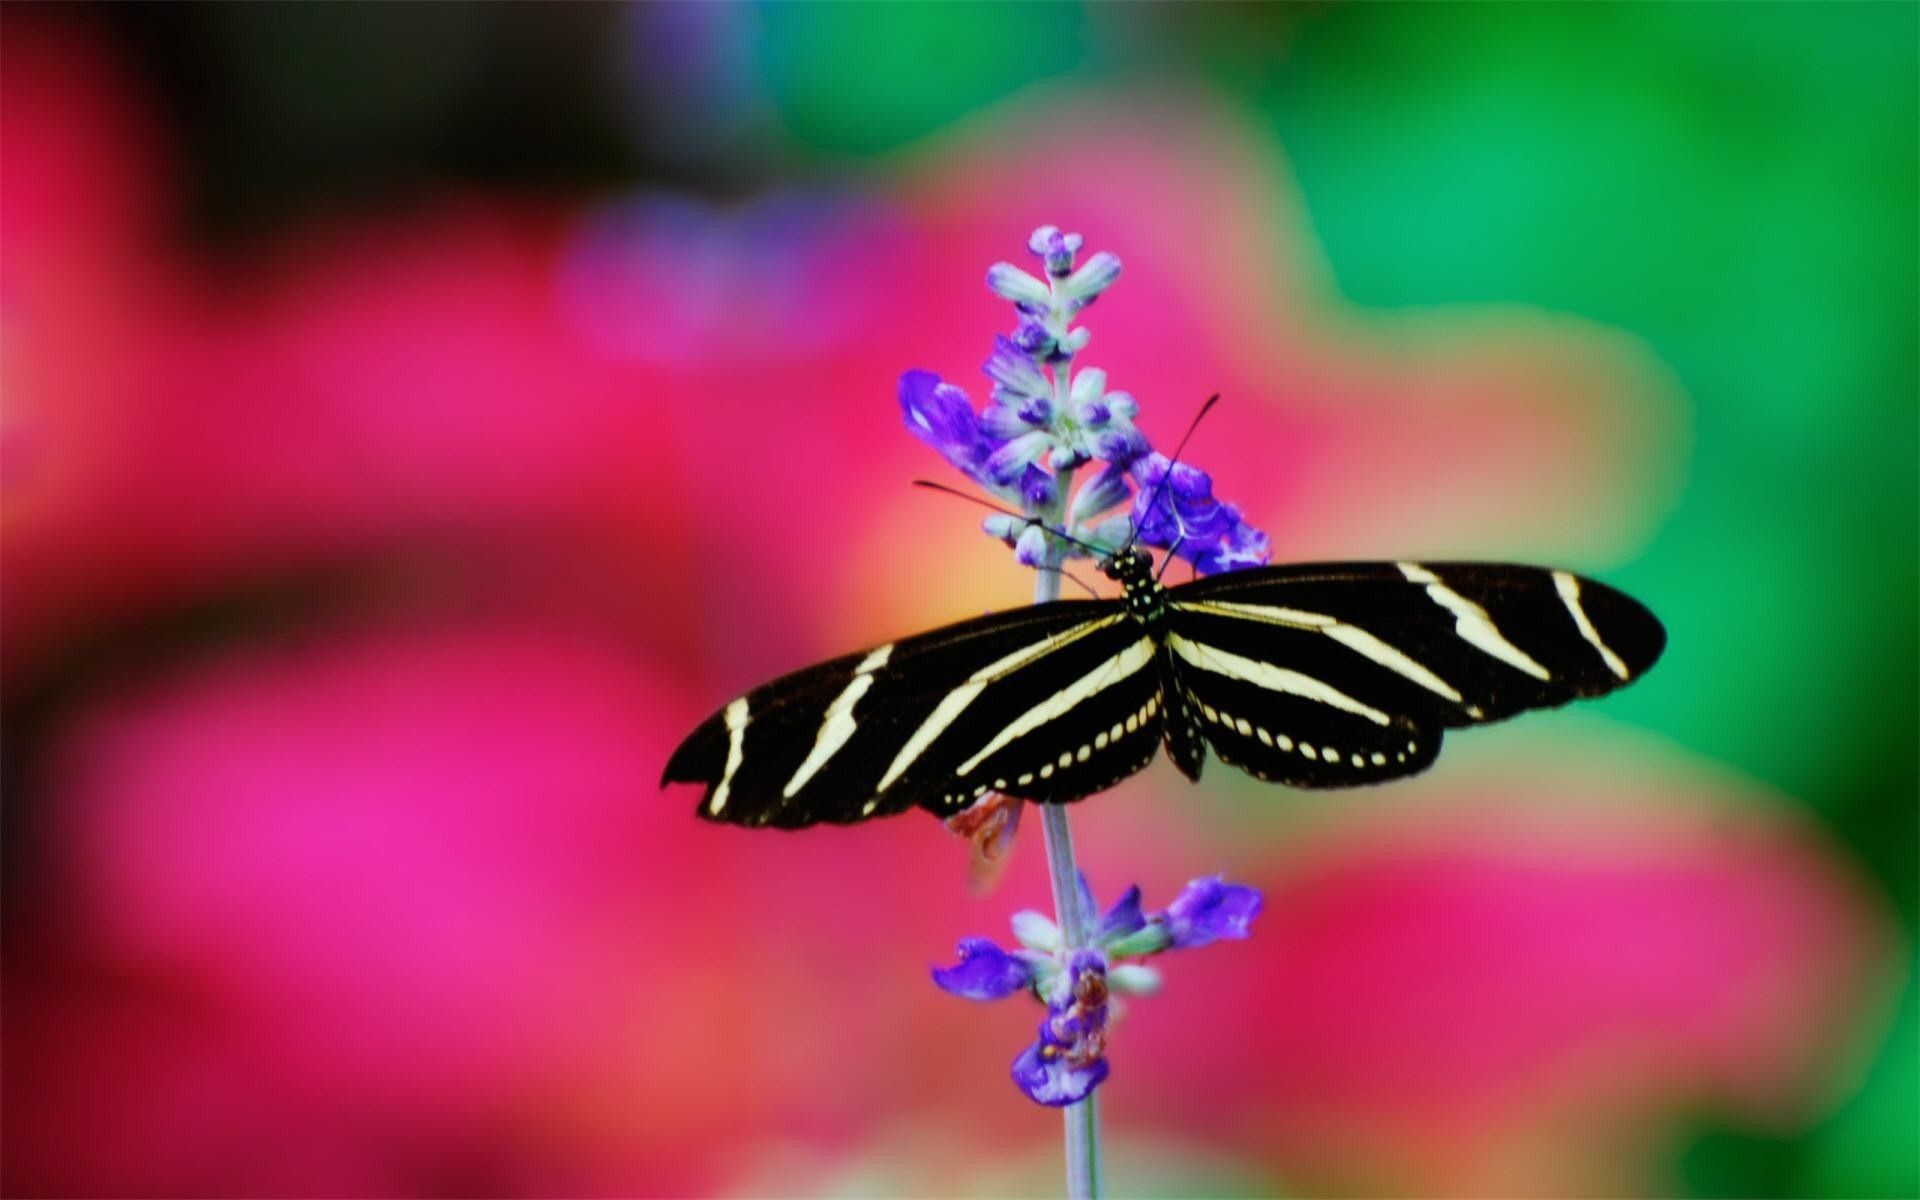 Res: 1920x1200, wallpaper BLACK BUTTERFLY   Black and white butterfly wallpapers and images  - wallpapers, pictures .